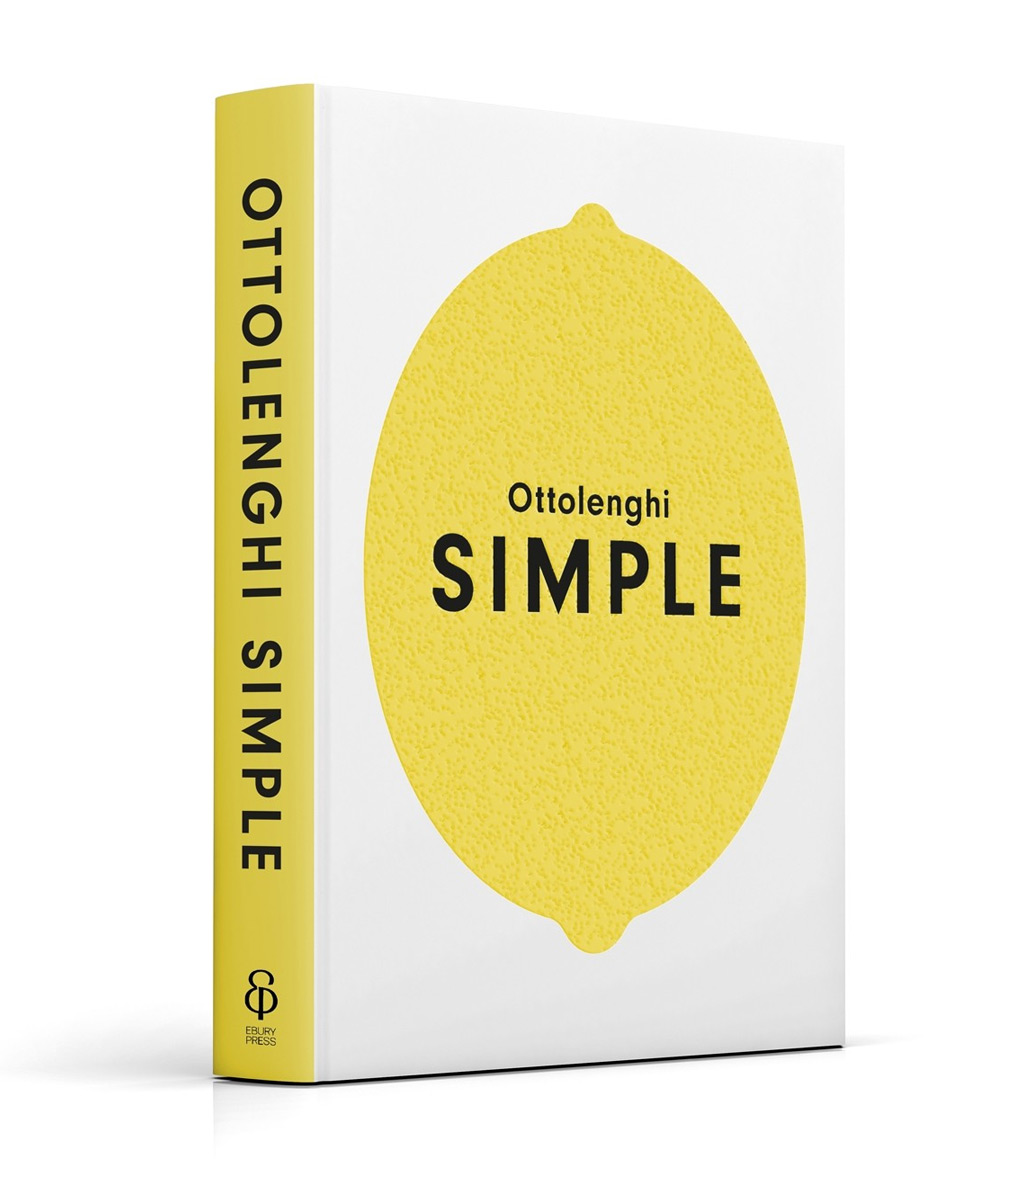 Ottolenghi SIMPLE Celebrity Chefs